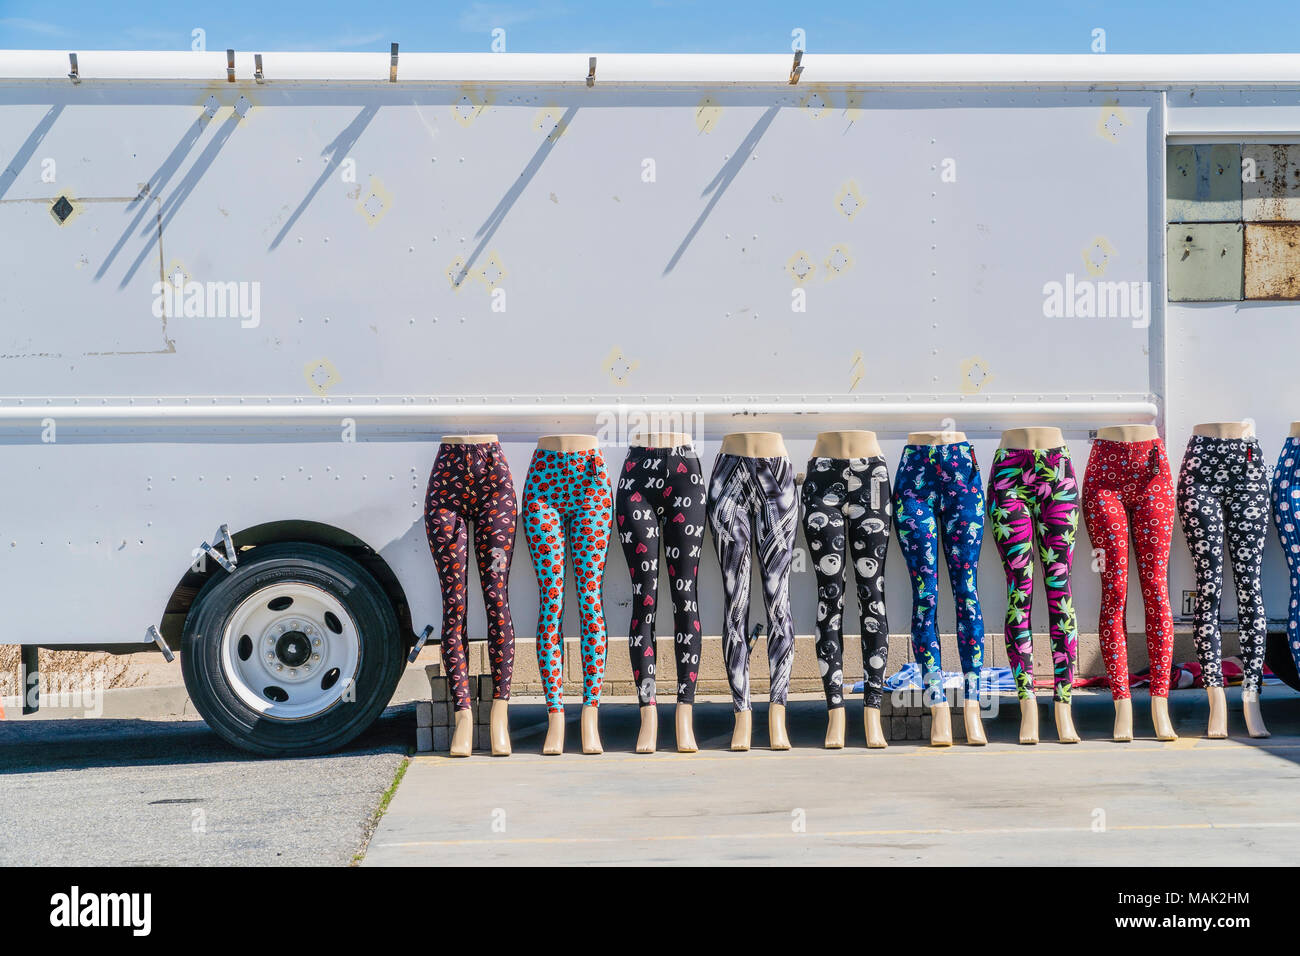 Multiple mannequins wearings leggings, displayed outside in front of a white panel van, in the desert community of Mojave, California. - Stock Image